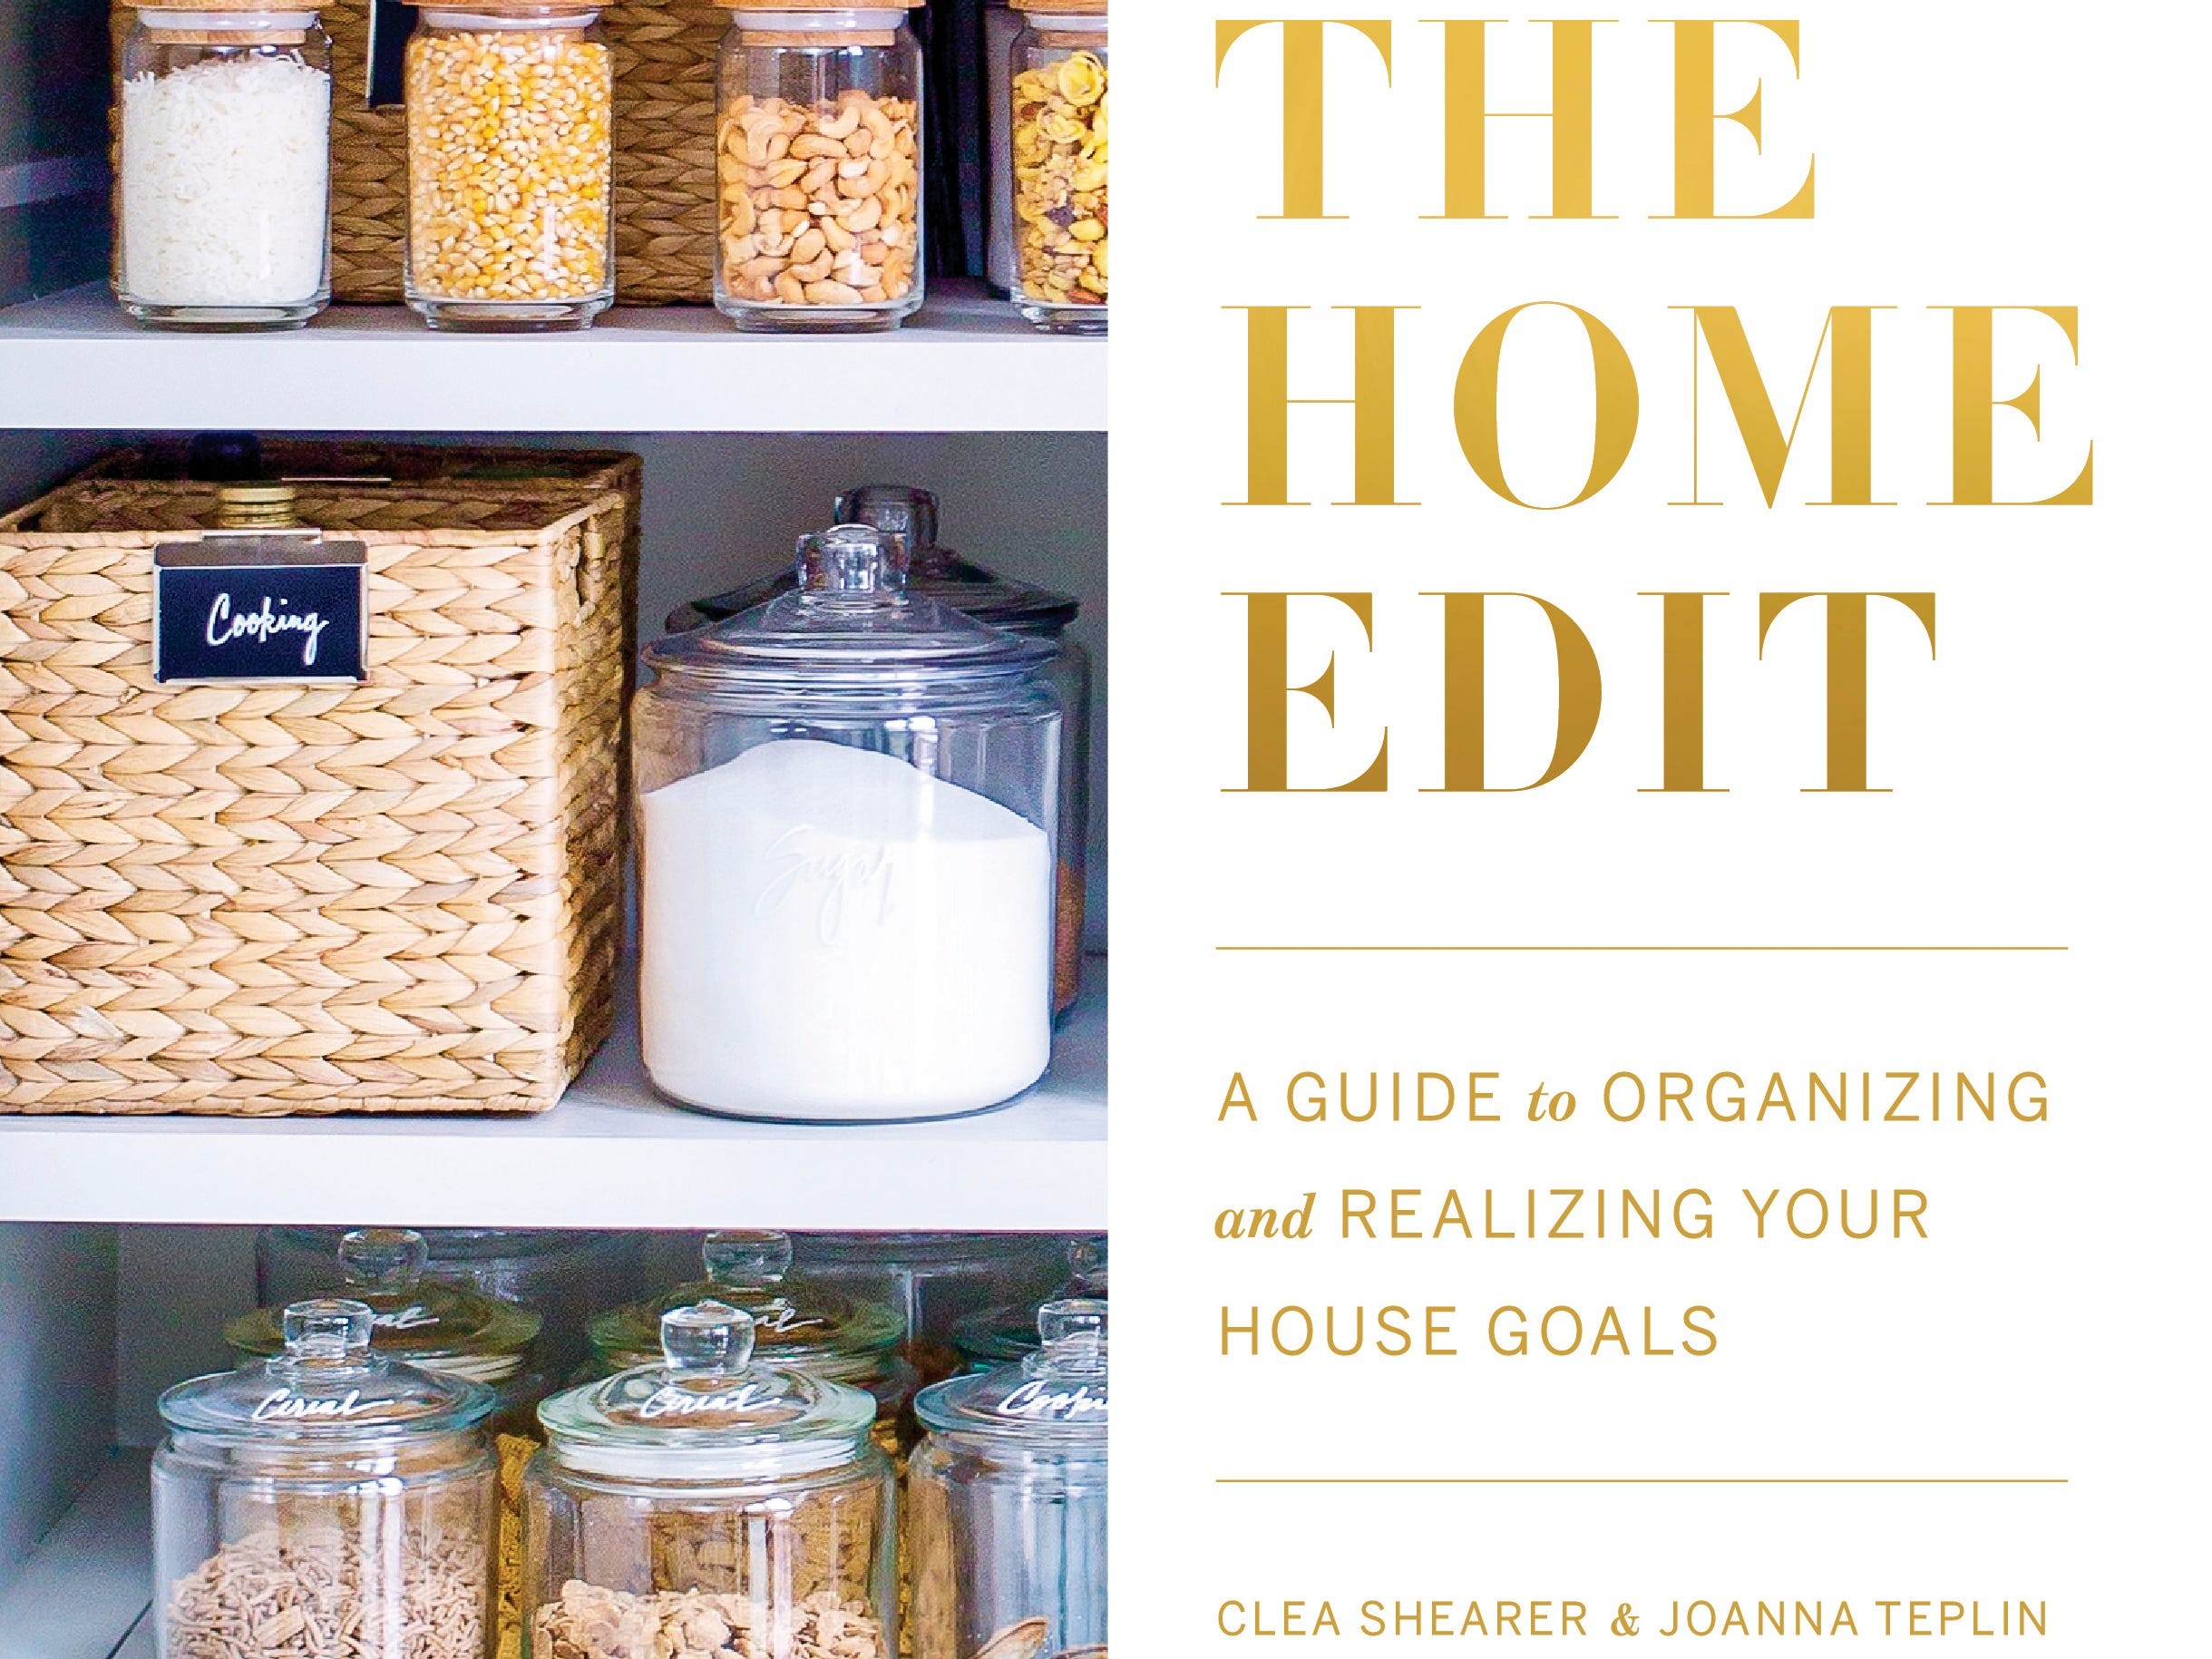 """The authors of """"The Home Edit"""" have gained a following on Instagram for organizing picture-perfect pantries and refrigerators,"""